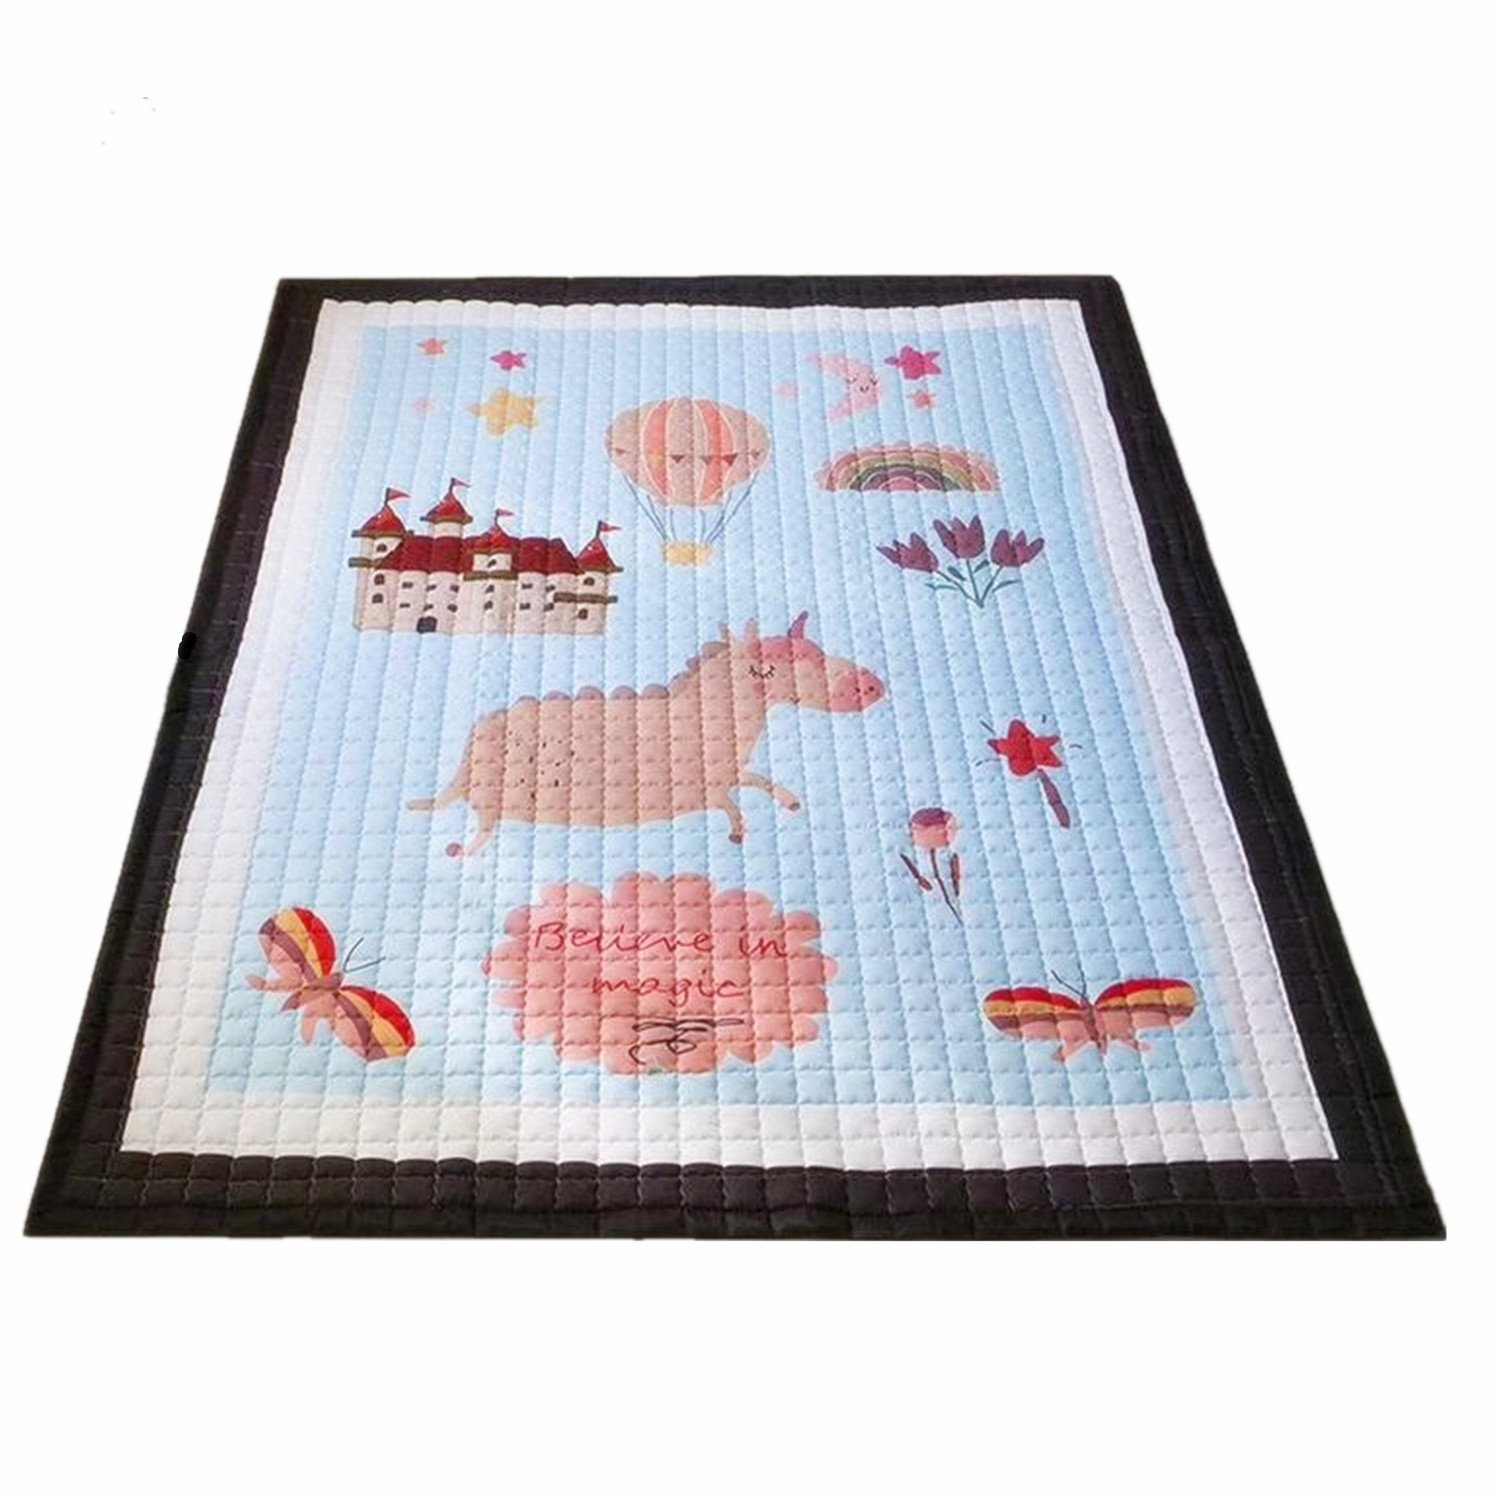 Super Large Baby Kids Cotton Rugs Nursery Room Animal Pattern Carpets Play Mats 1.95*1.45 Meter (Rainbow Unicorn) MJTP